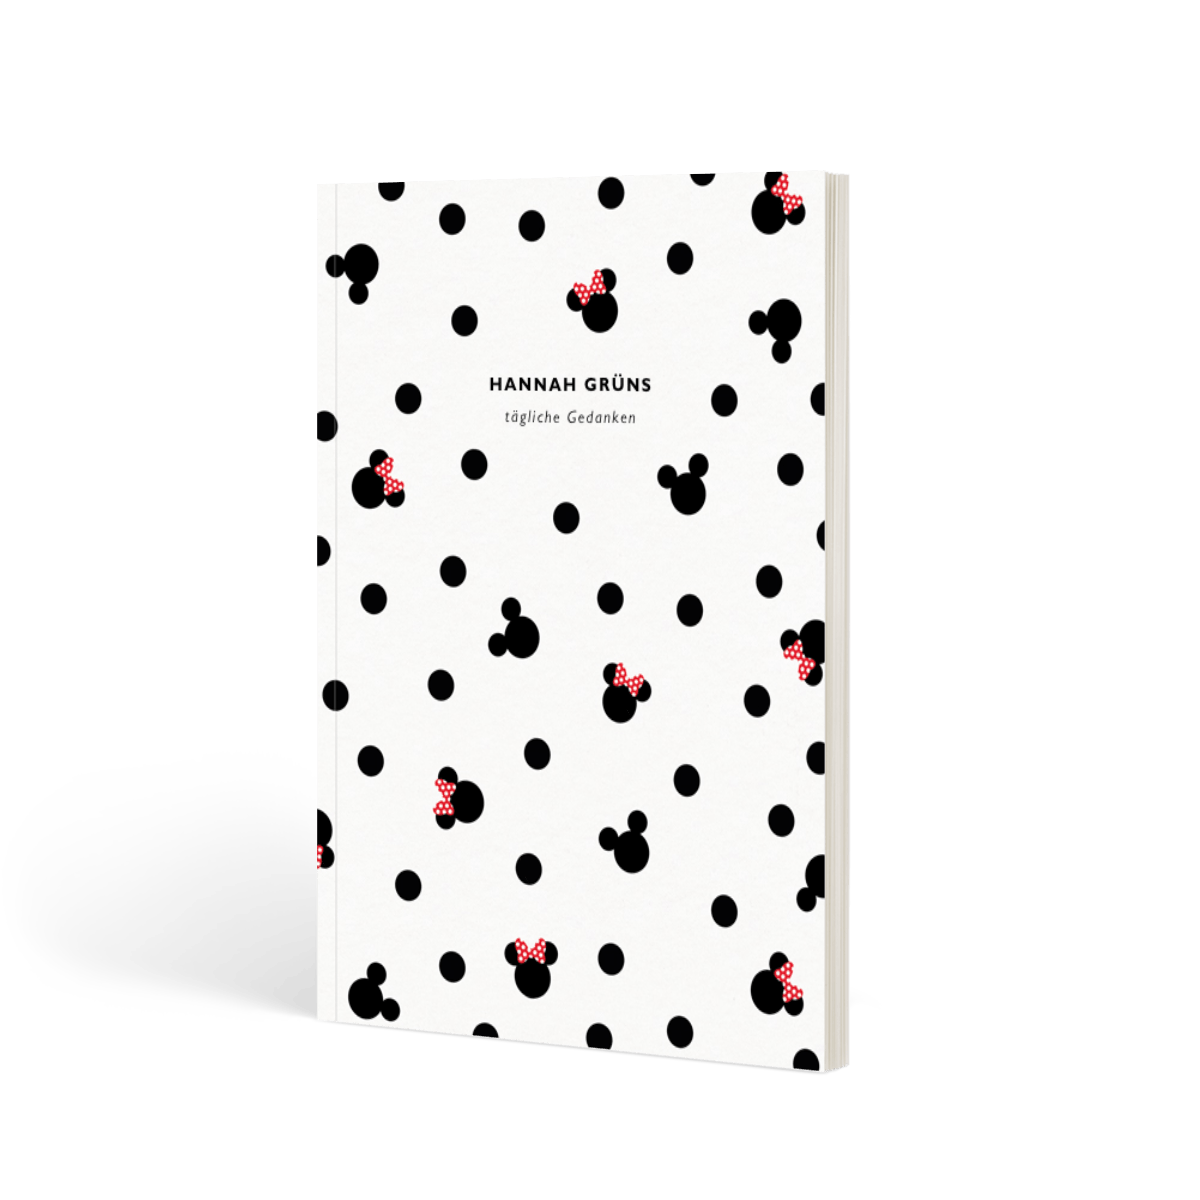 Https%3a%2f%2fwww.papier.com%2fproduct image%2f43462%2f6%2fmickey minnie mouse 9013 vorderseite 1536148151.png?ixlib=rb 1.1